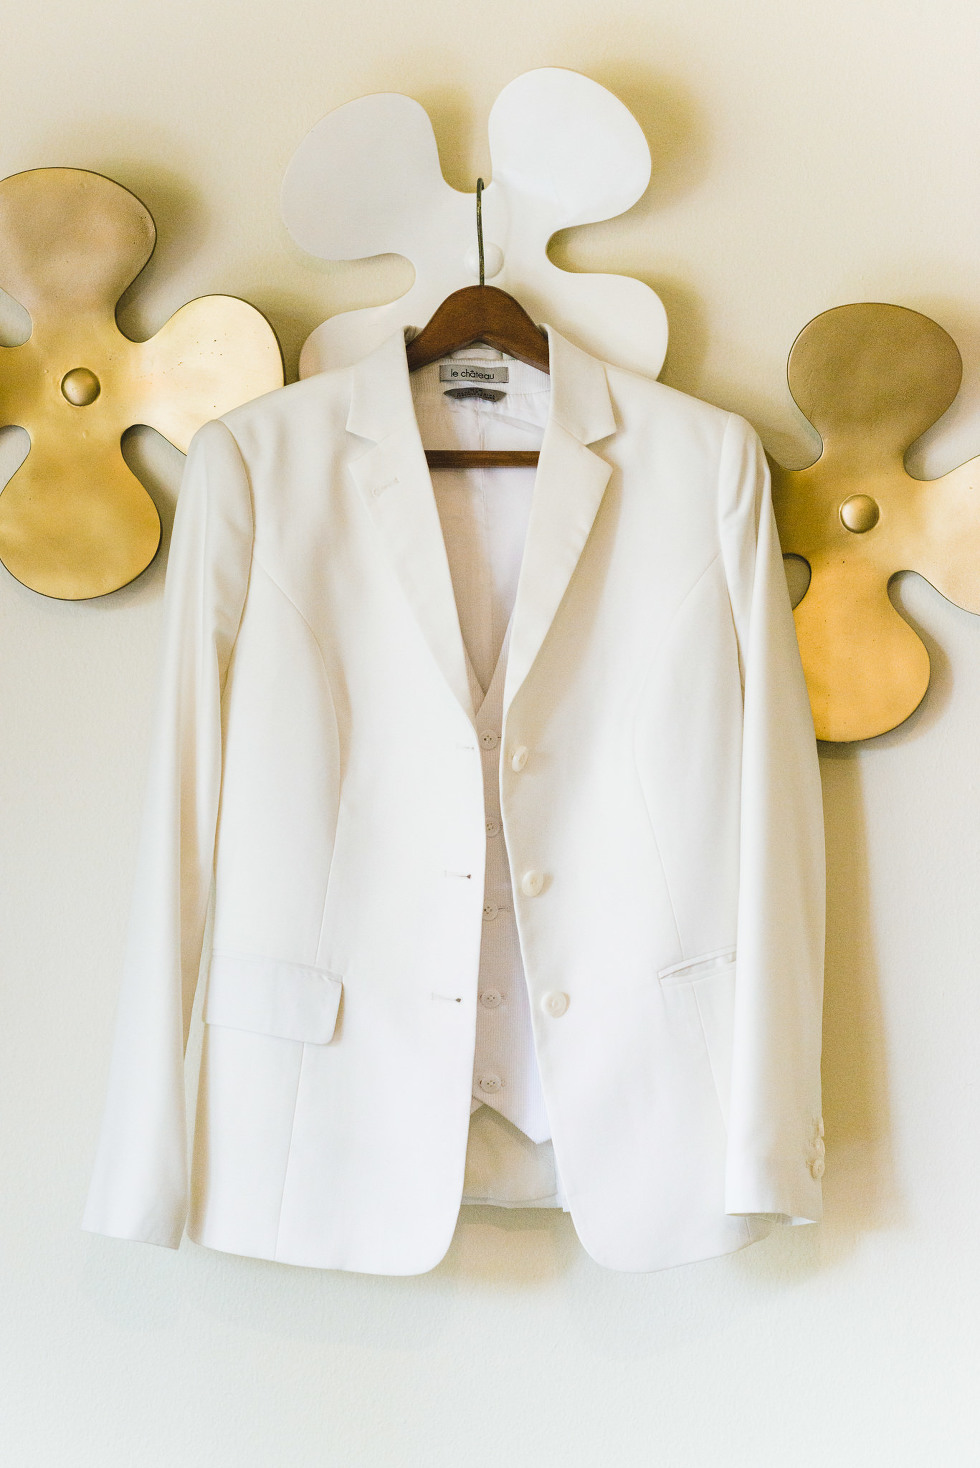 brides white wedding jacket hanging up on the wall at Now Sapphire Resort in Mexico